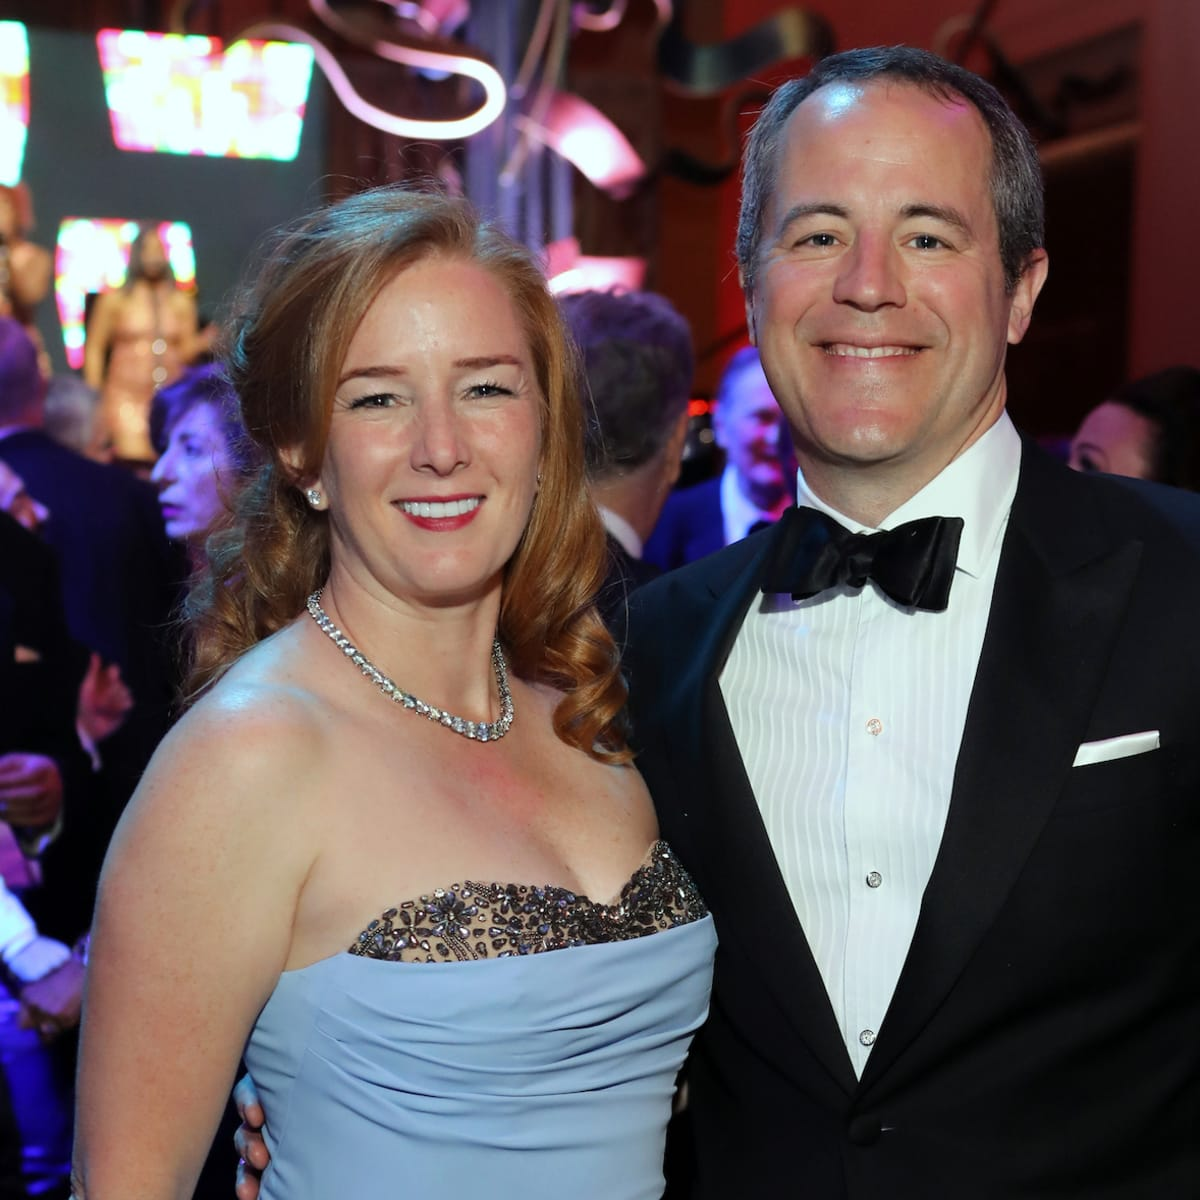 Houston, Ballet Ball social story, March 2017, Allison Thacker, Troy Thacker